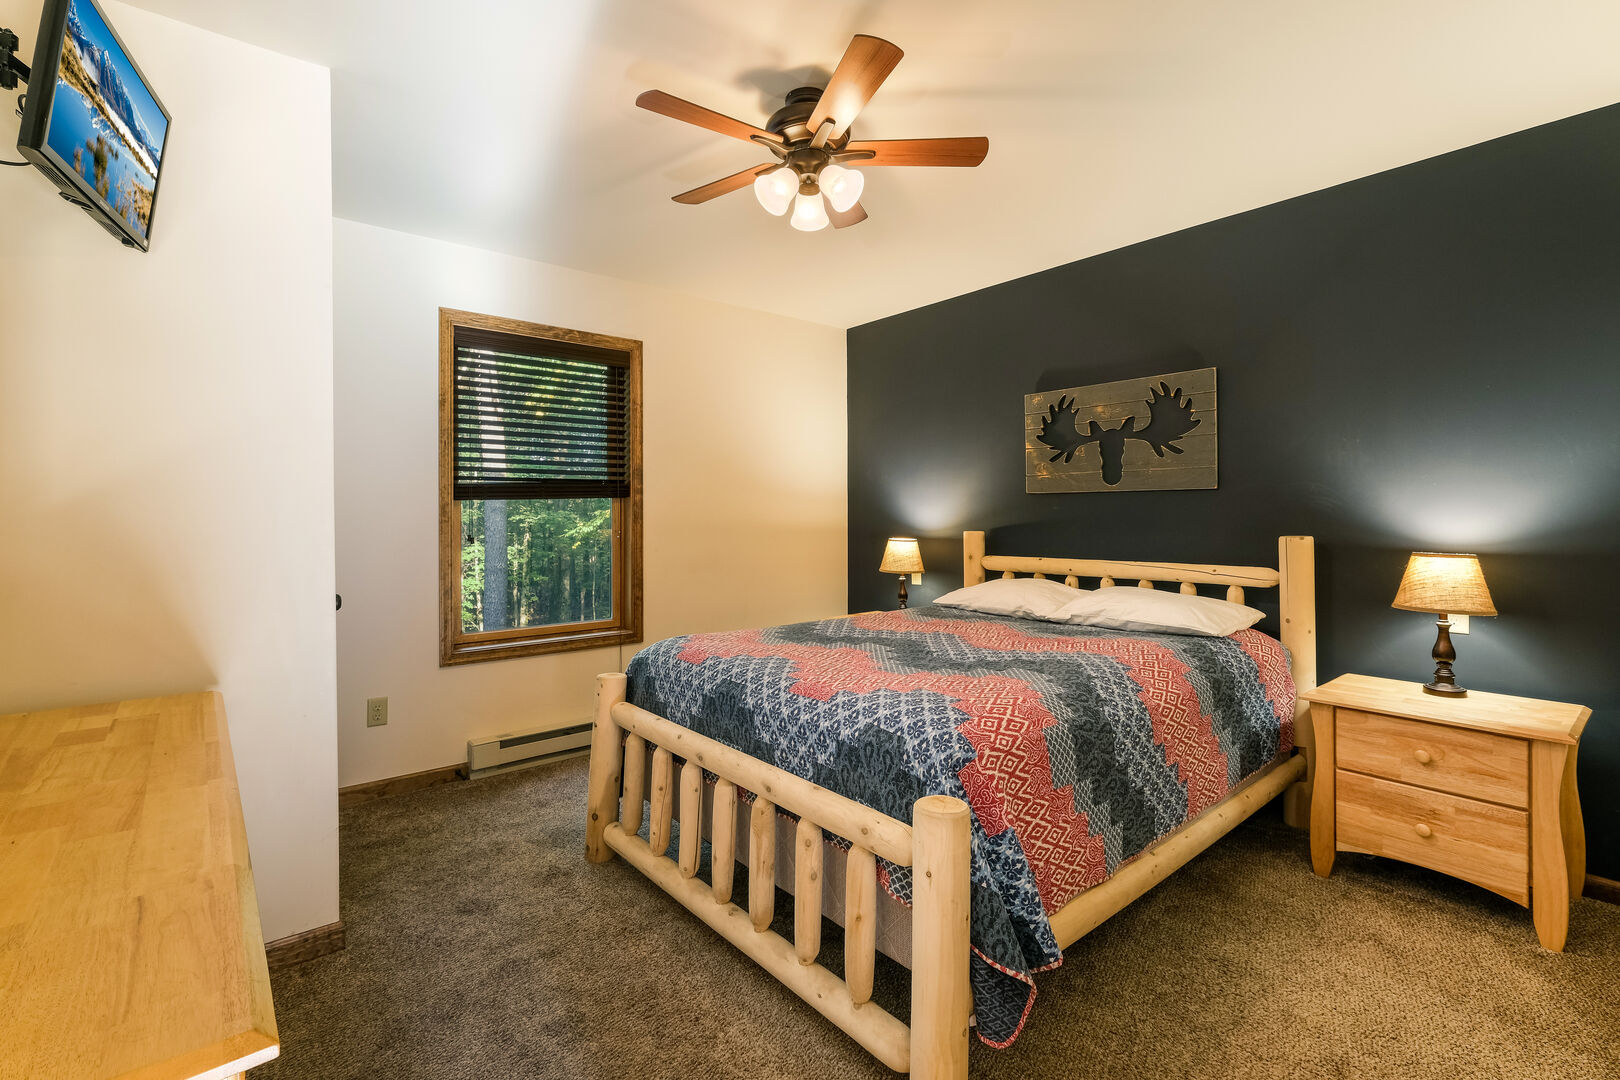 A moose painting hangs over a large bed in the center of the room, with nightstands on either side, and a dresser and TV at the foot of the bed.